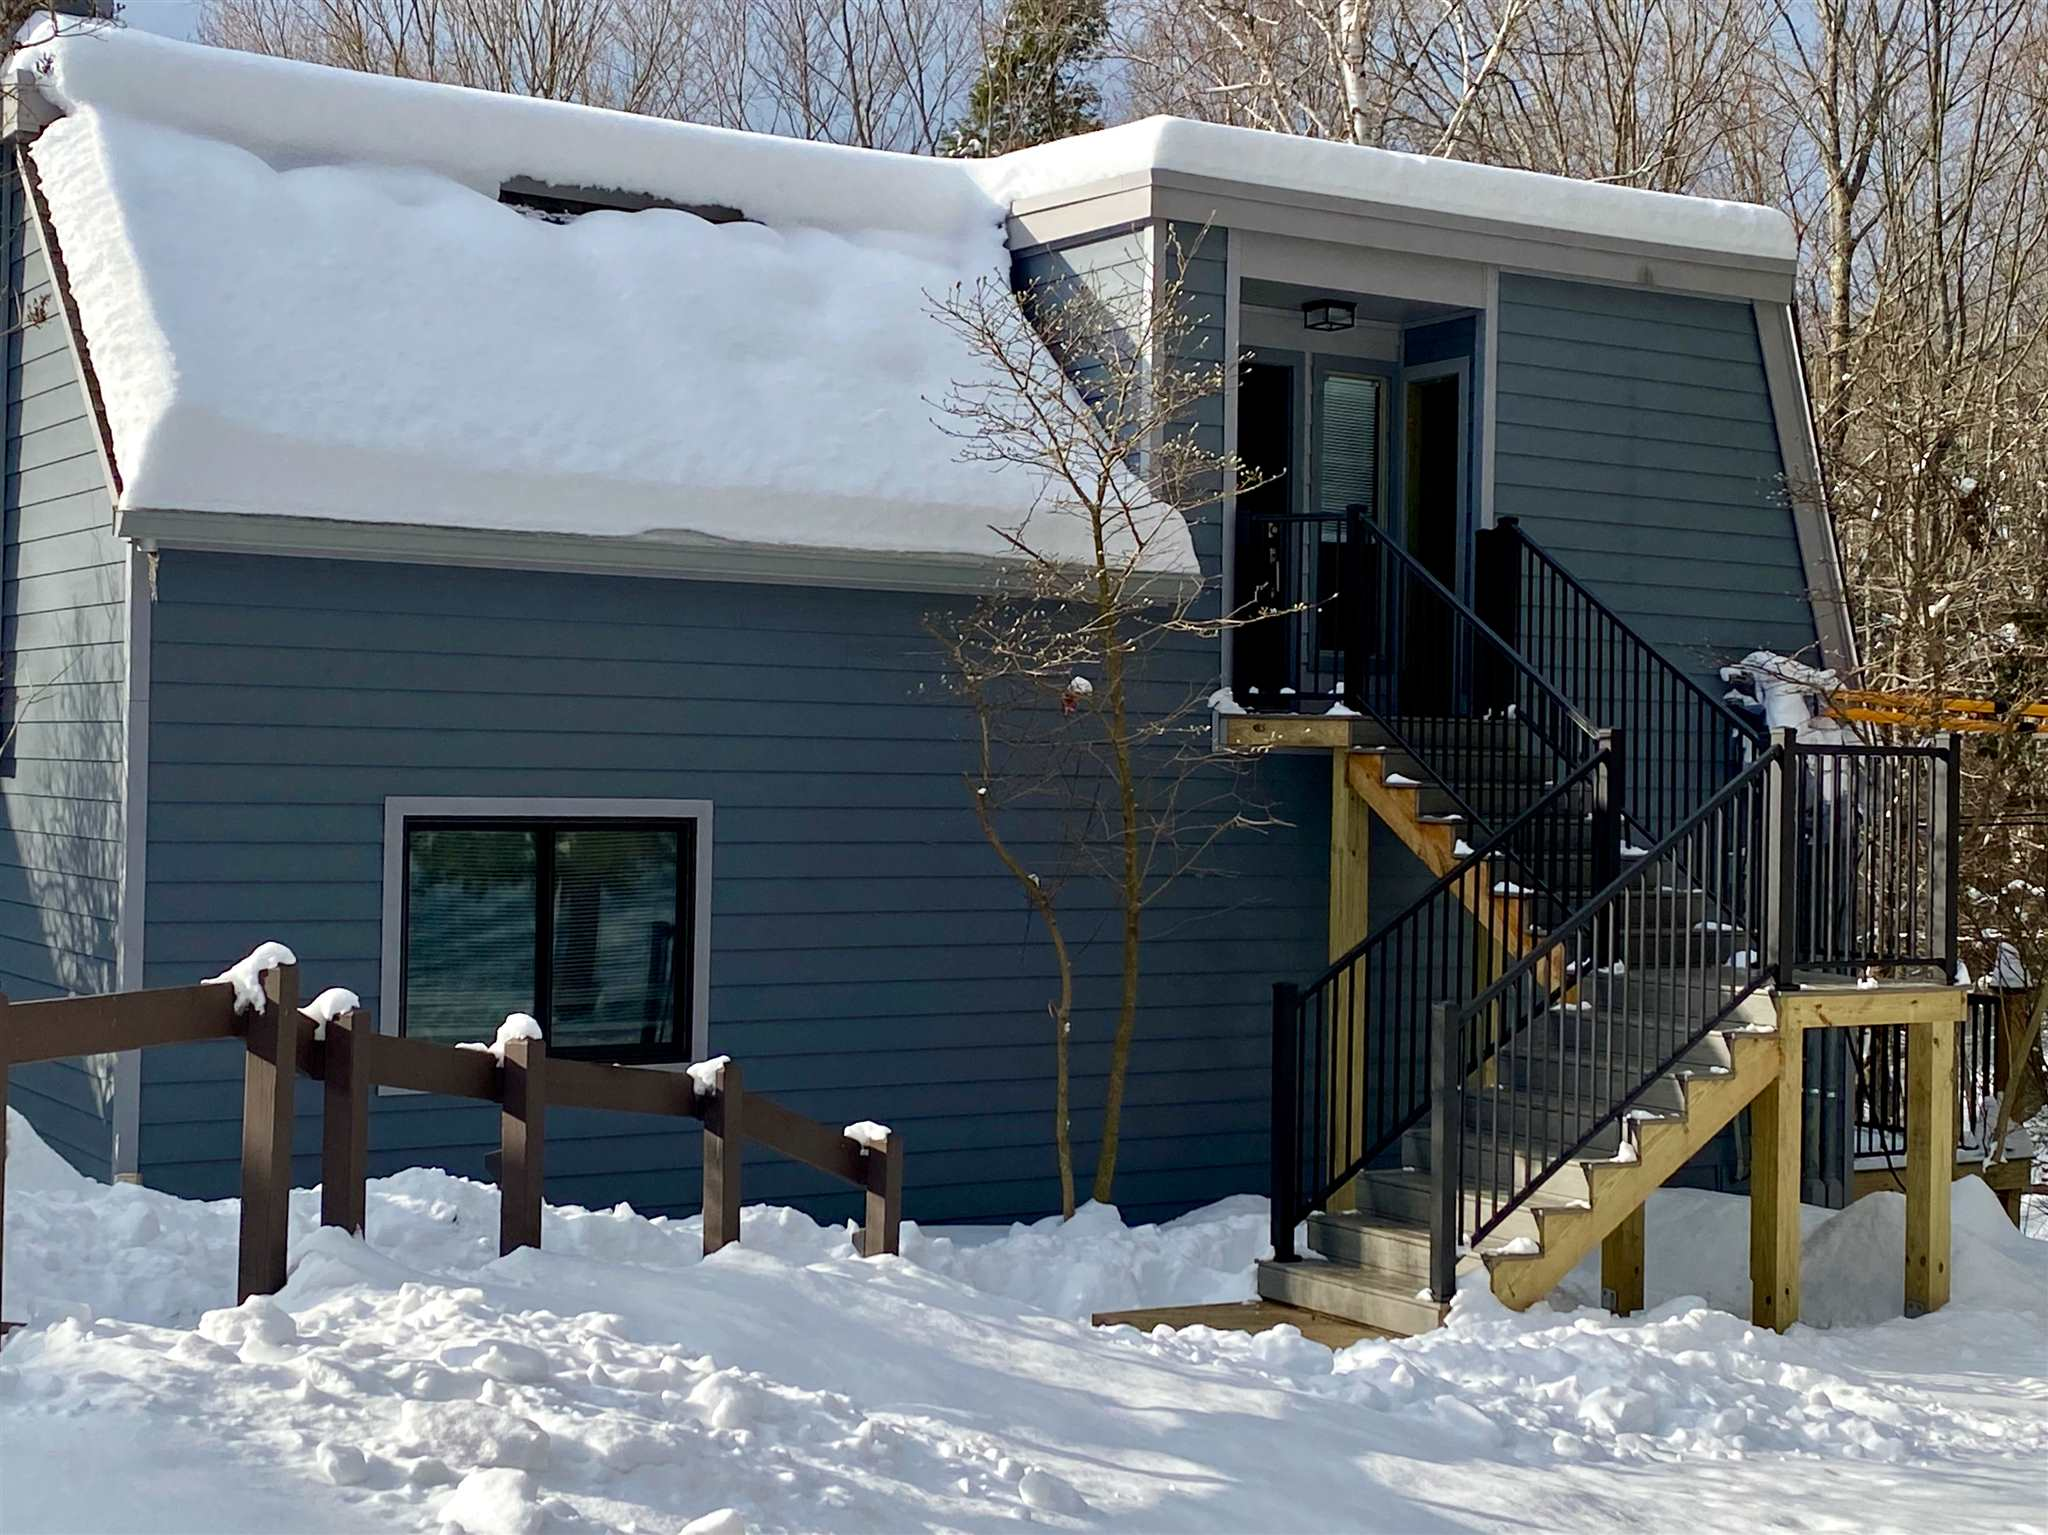 Village of Quechee in Town of Hartford VT  05059 Condo for sale $List Price is $189,000